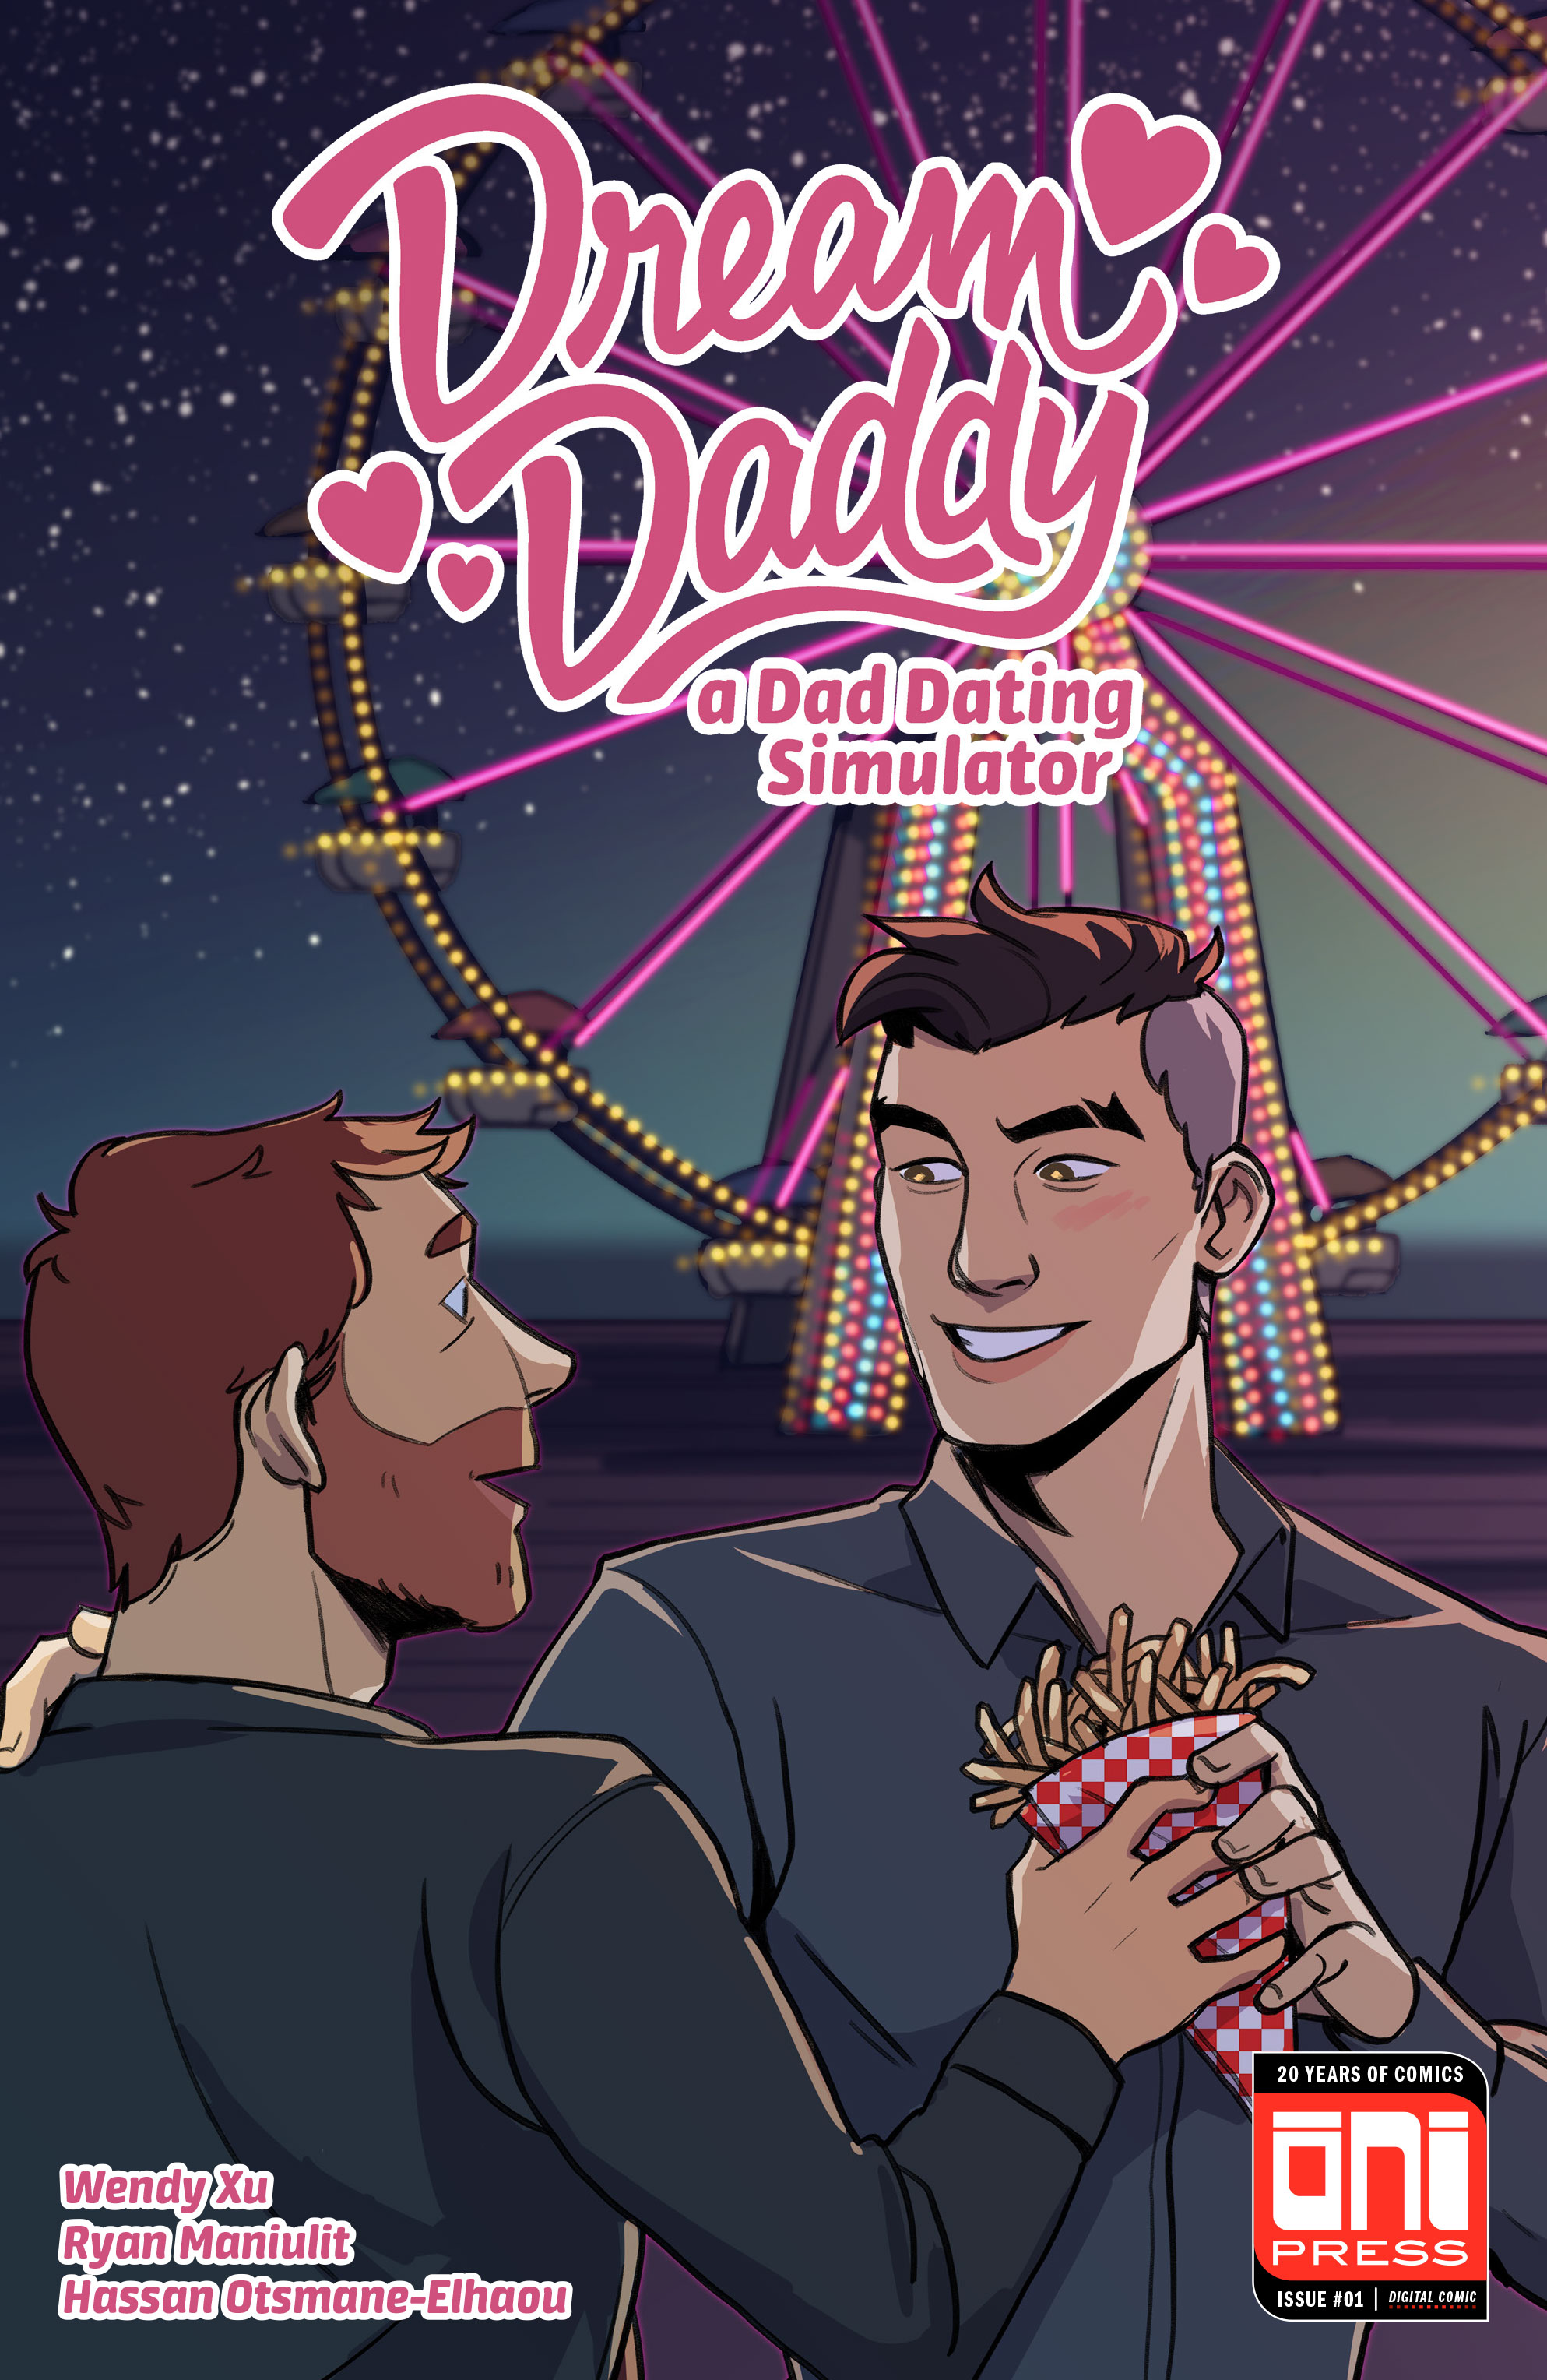 http://www.pastemagazine.com/articles/DreamDaddyCover.jpg